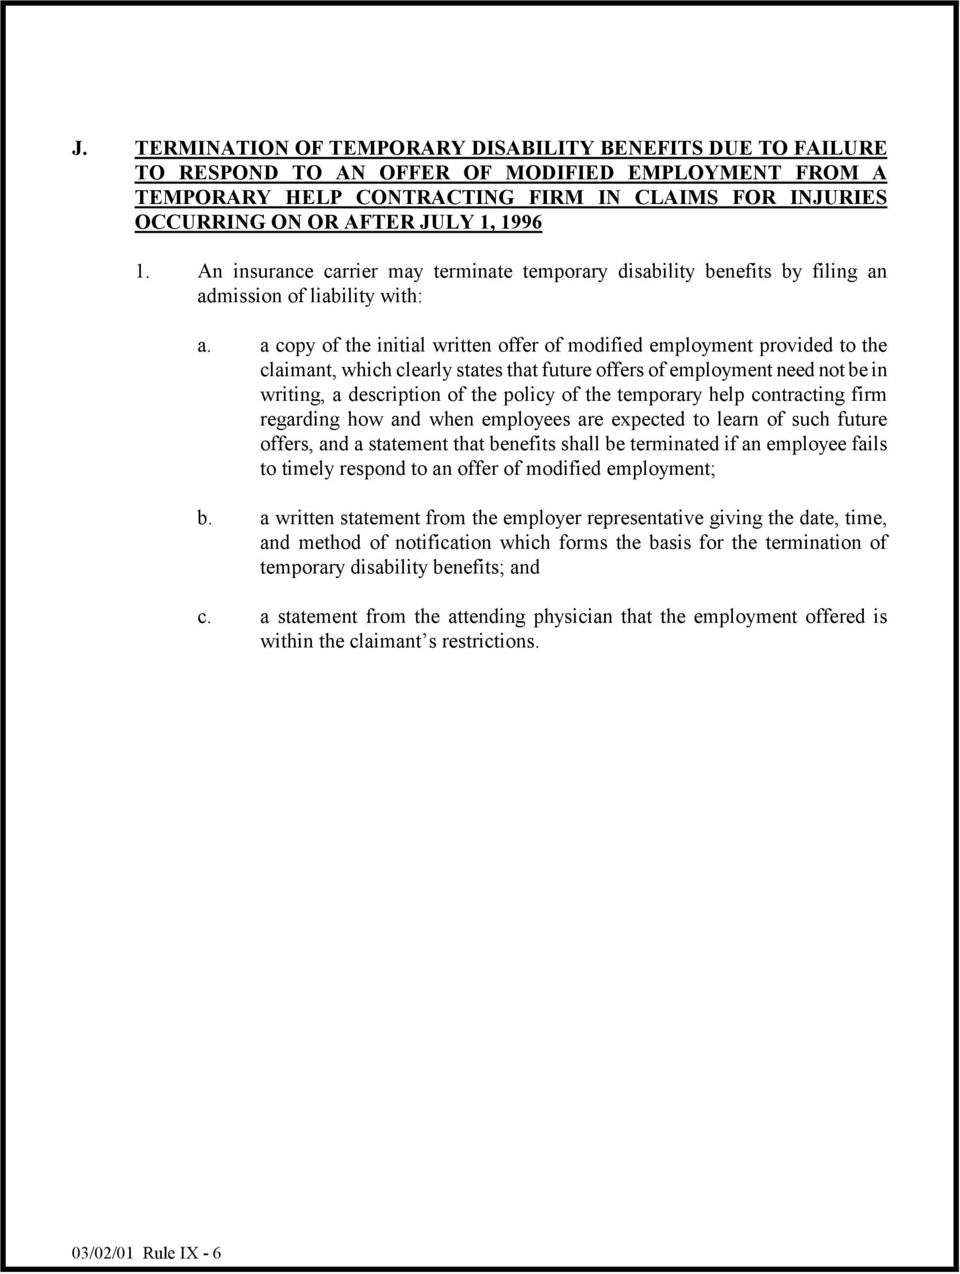 a copy of the initial written offer of modified employment provided to the claimant, which clearly states that future offers of employment need not be in writing, a description of the policy of the